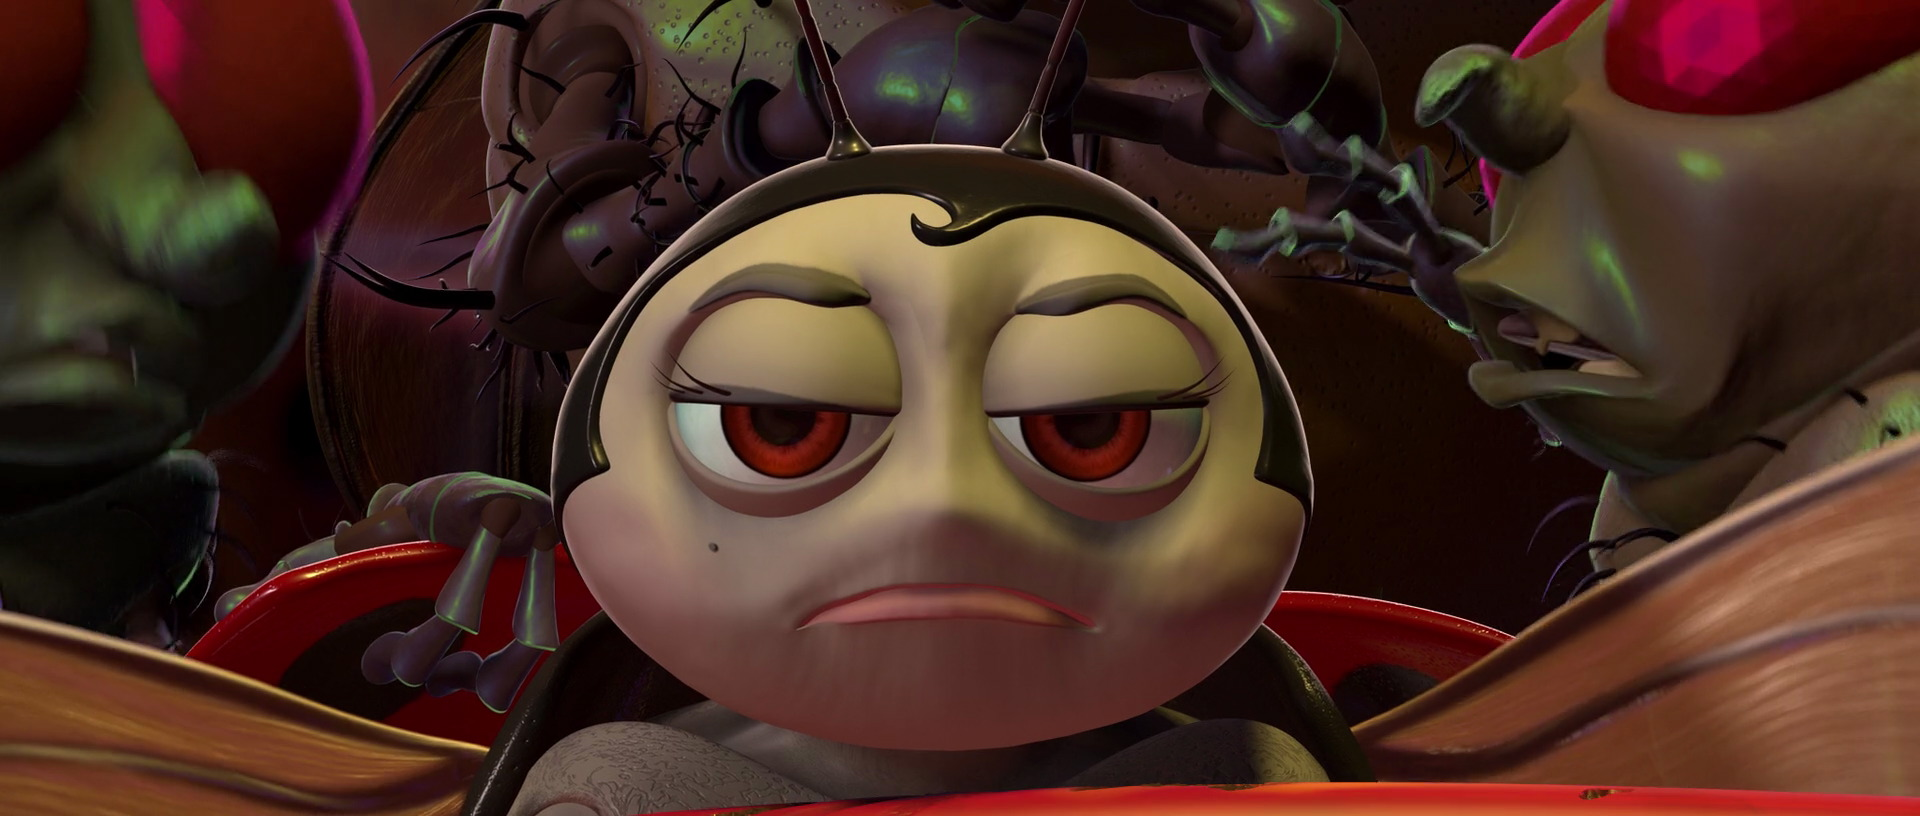 francis character from �a bug�s life� pixarplanetfr